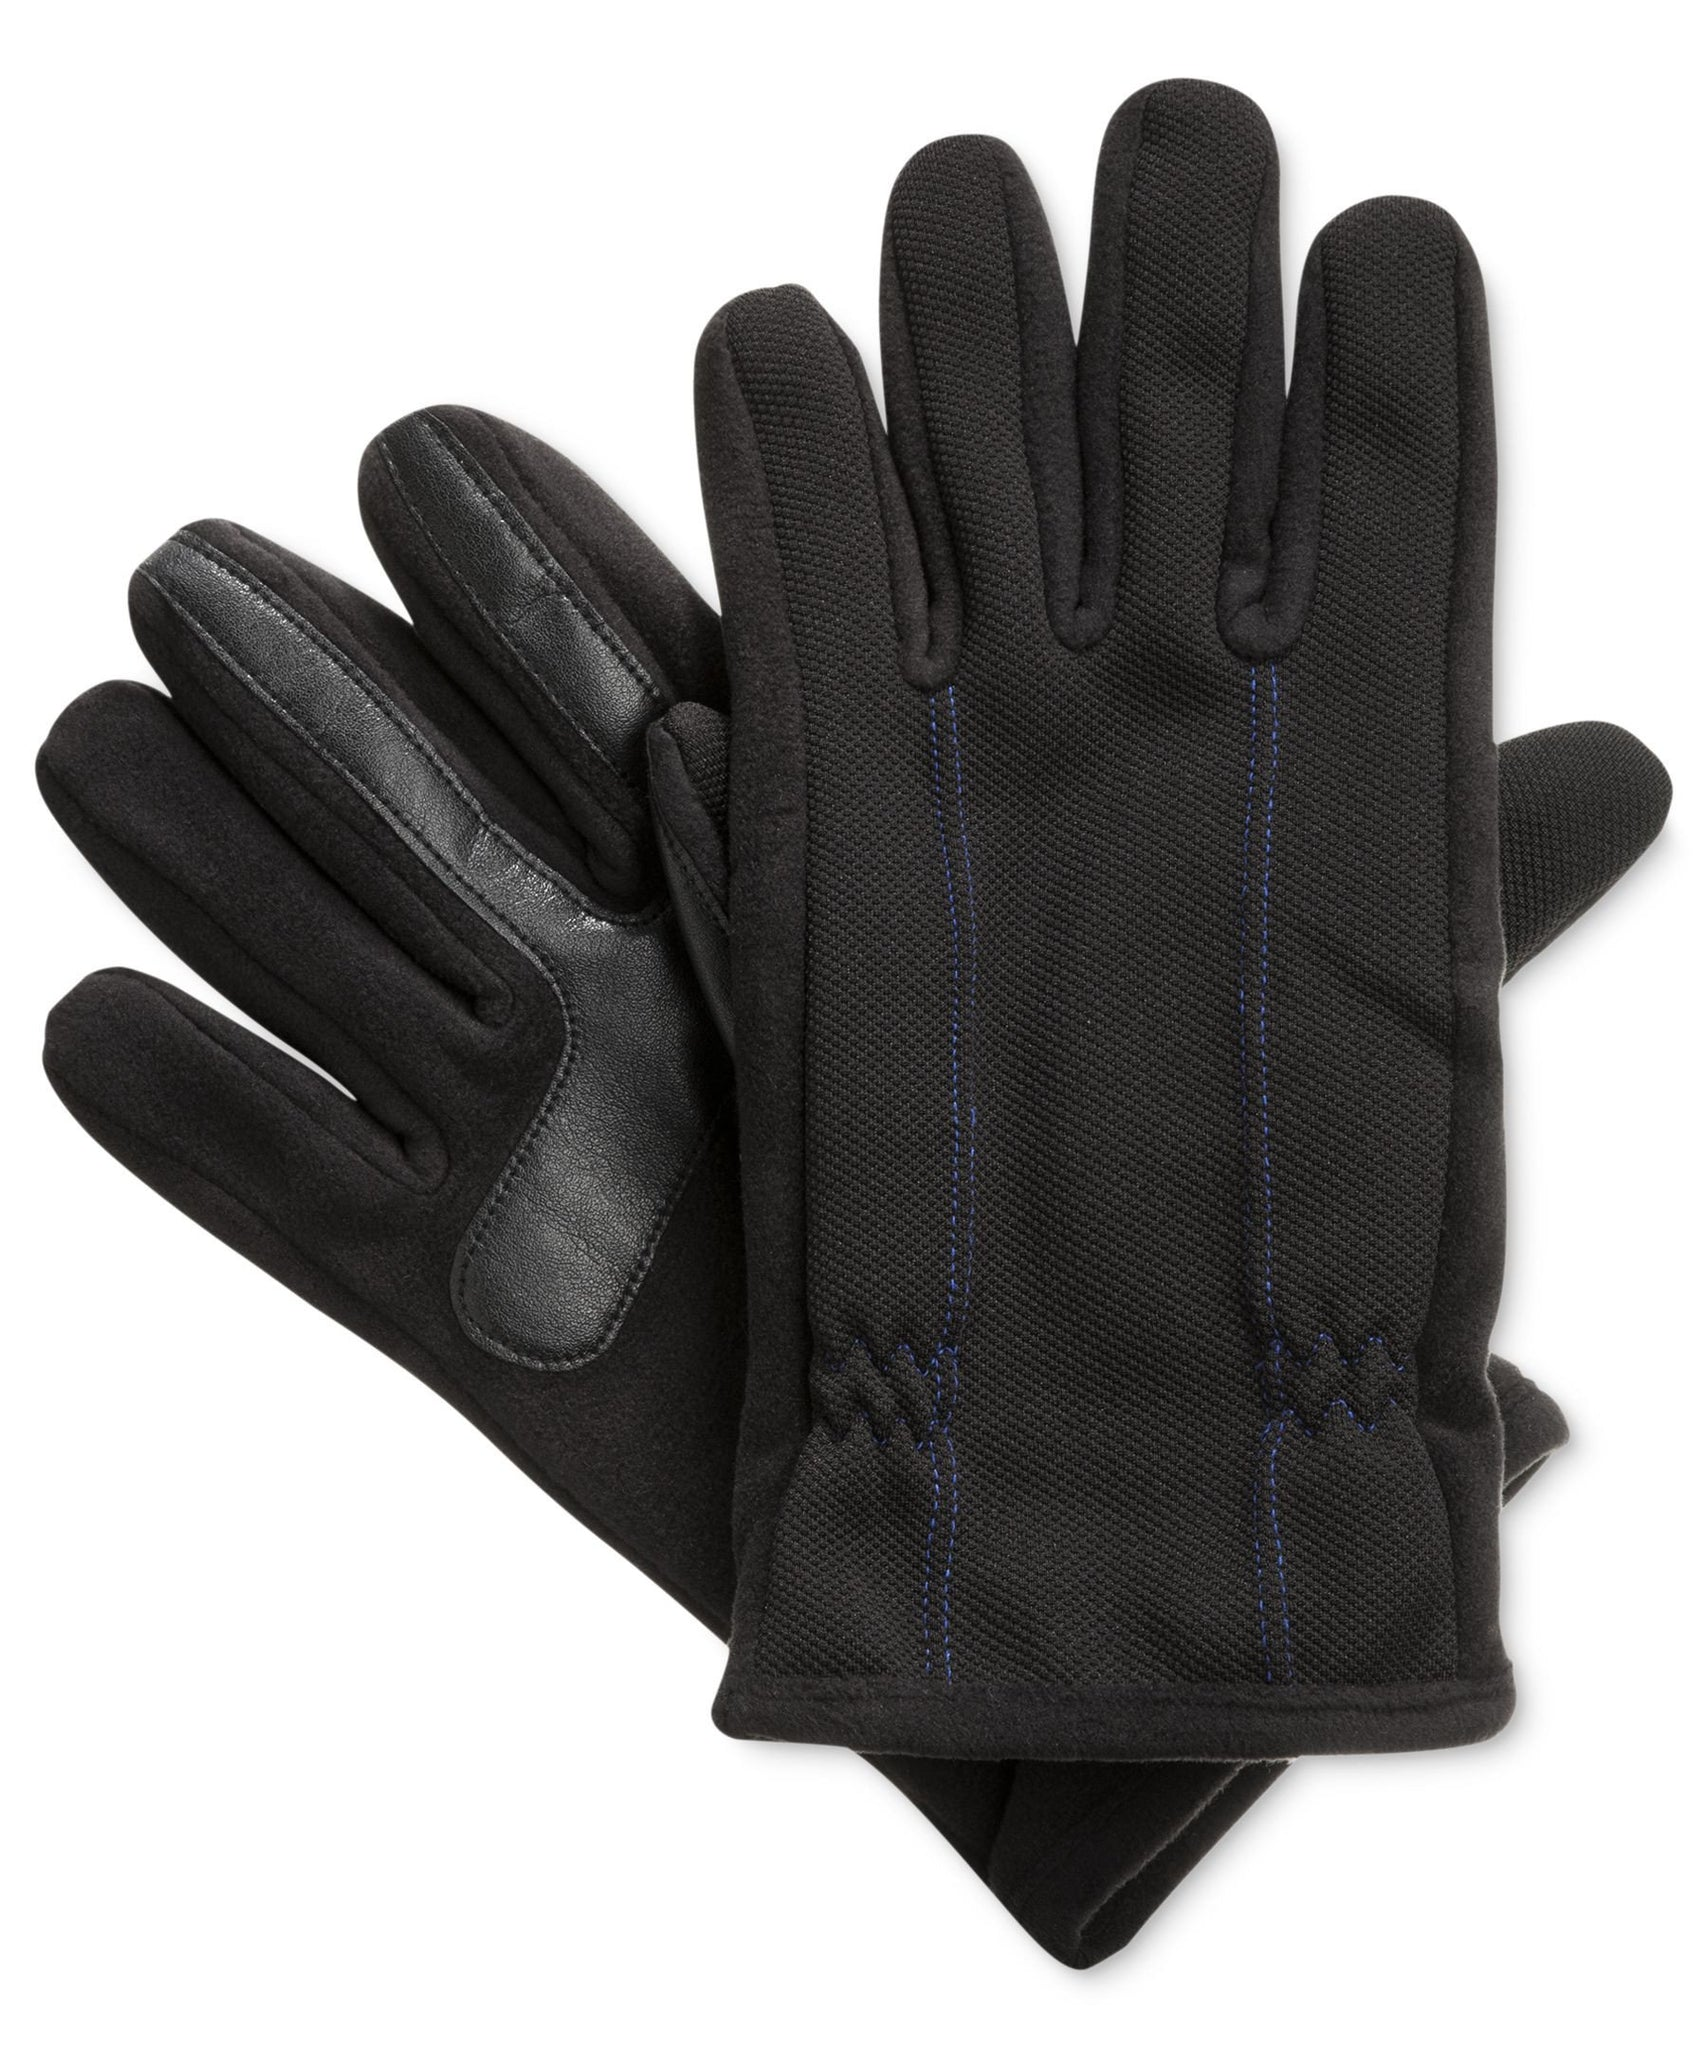 Isotoner Signature Blue THERMAflex™ SmarTouch Tech Stretch Gloves - Medium